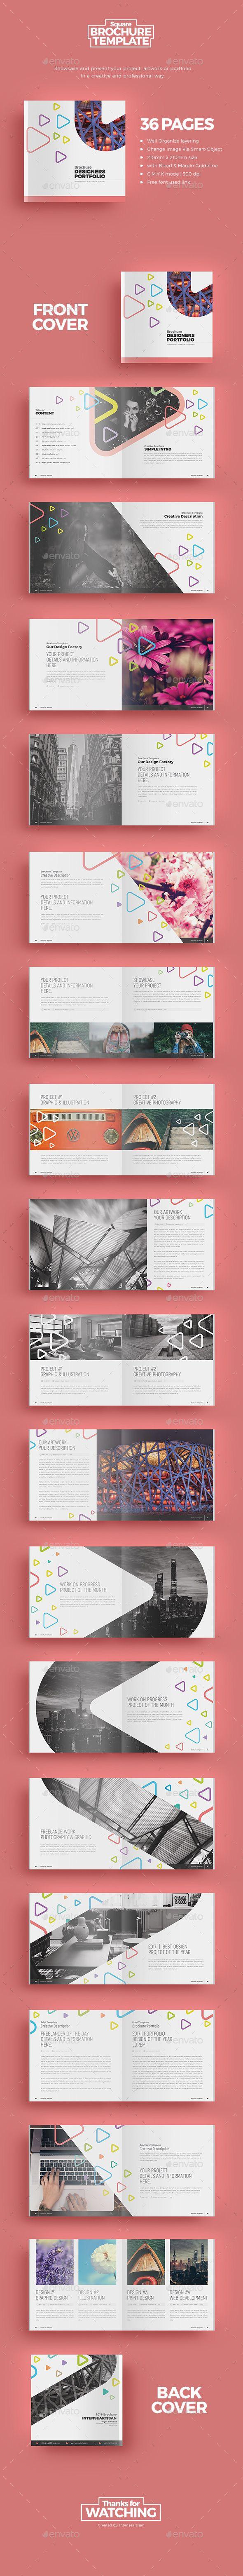 Square Brochure 3 — Photoshop PSD #modern #indesign • Download ➝ https://graphicriver.net/item/square-brochure-3/19455741?ref=pxcr